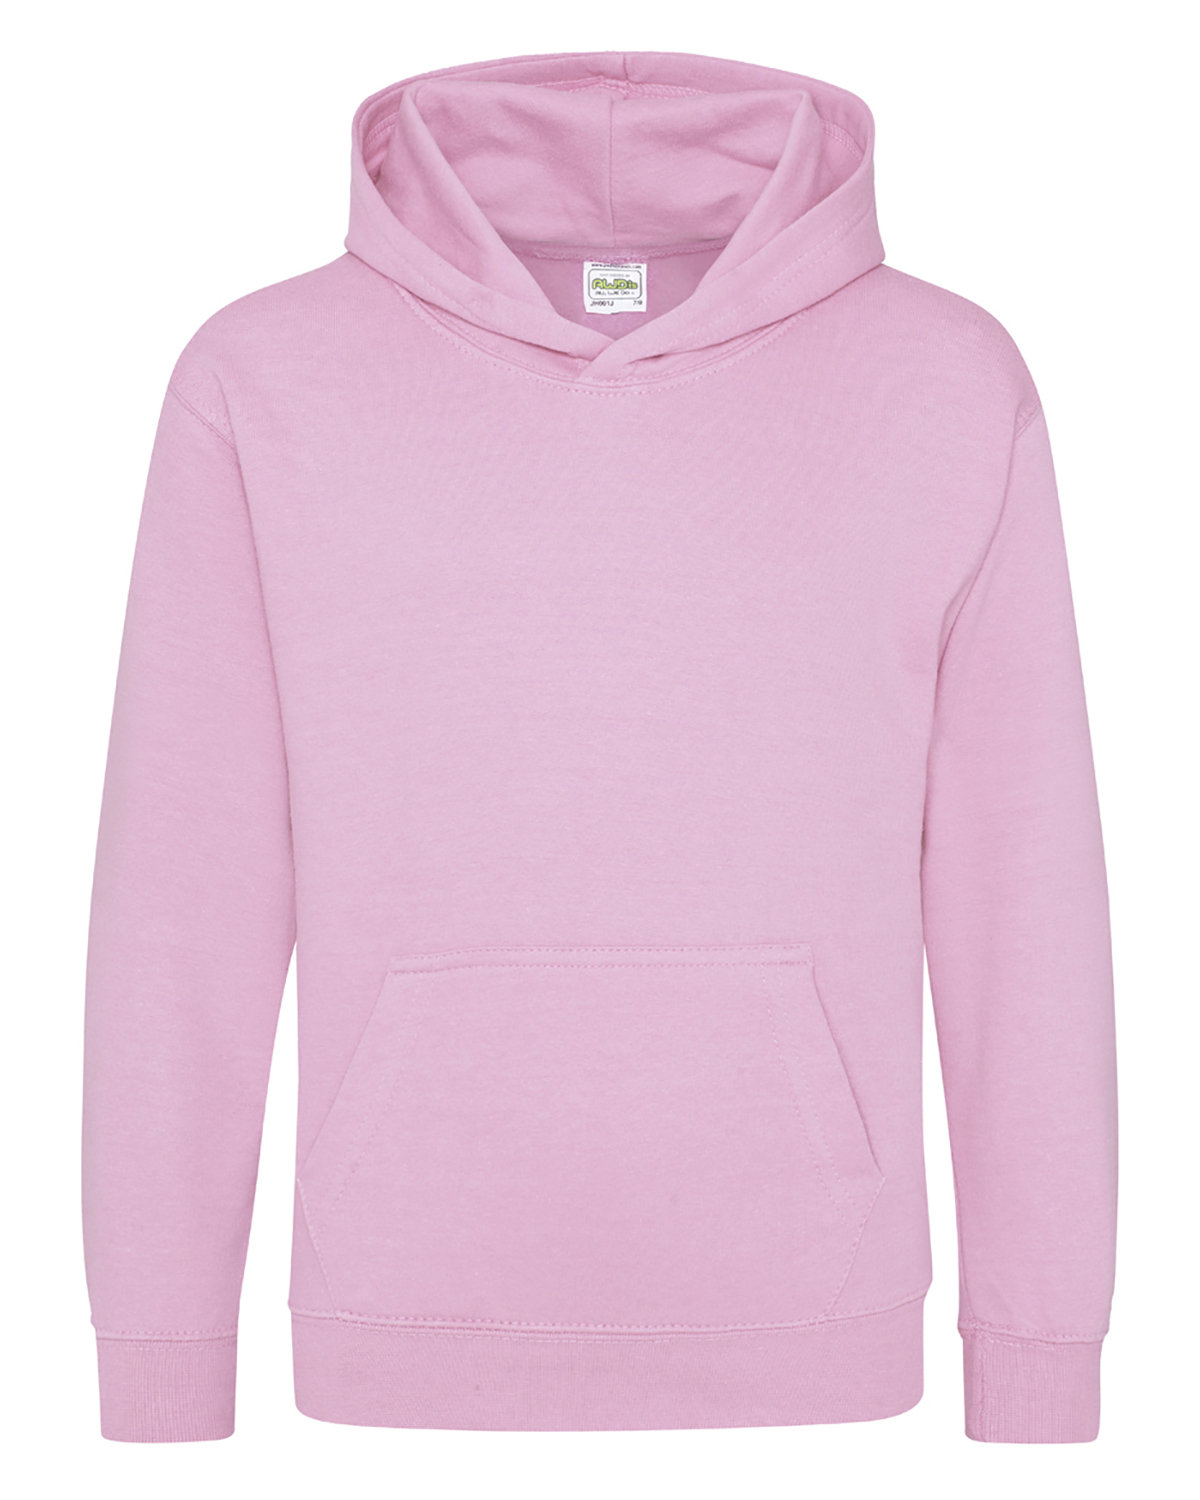 Just Hoods By AWDis Youth 80/20 Midweight College Hooded Sweatshirt BABY PINK